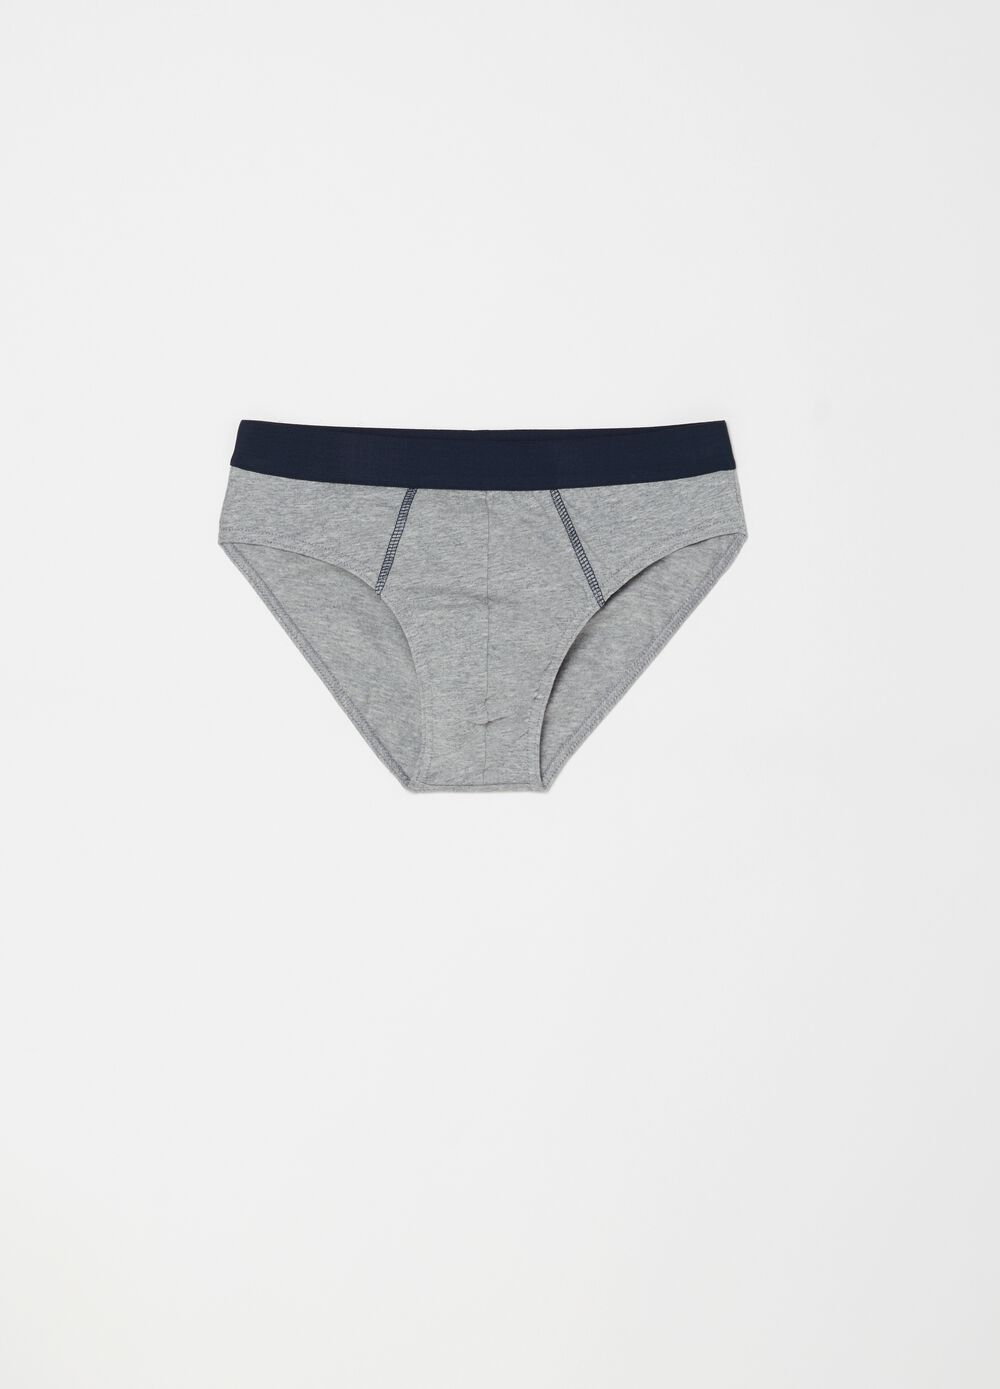 Five-pack briefs in 100% cotton